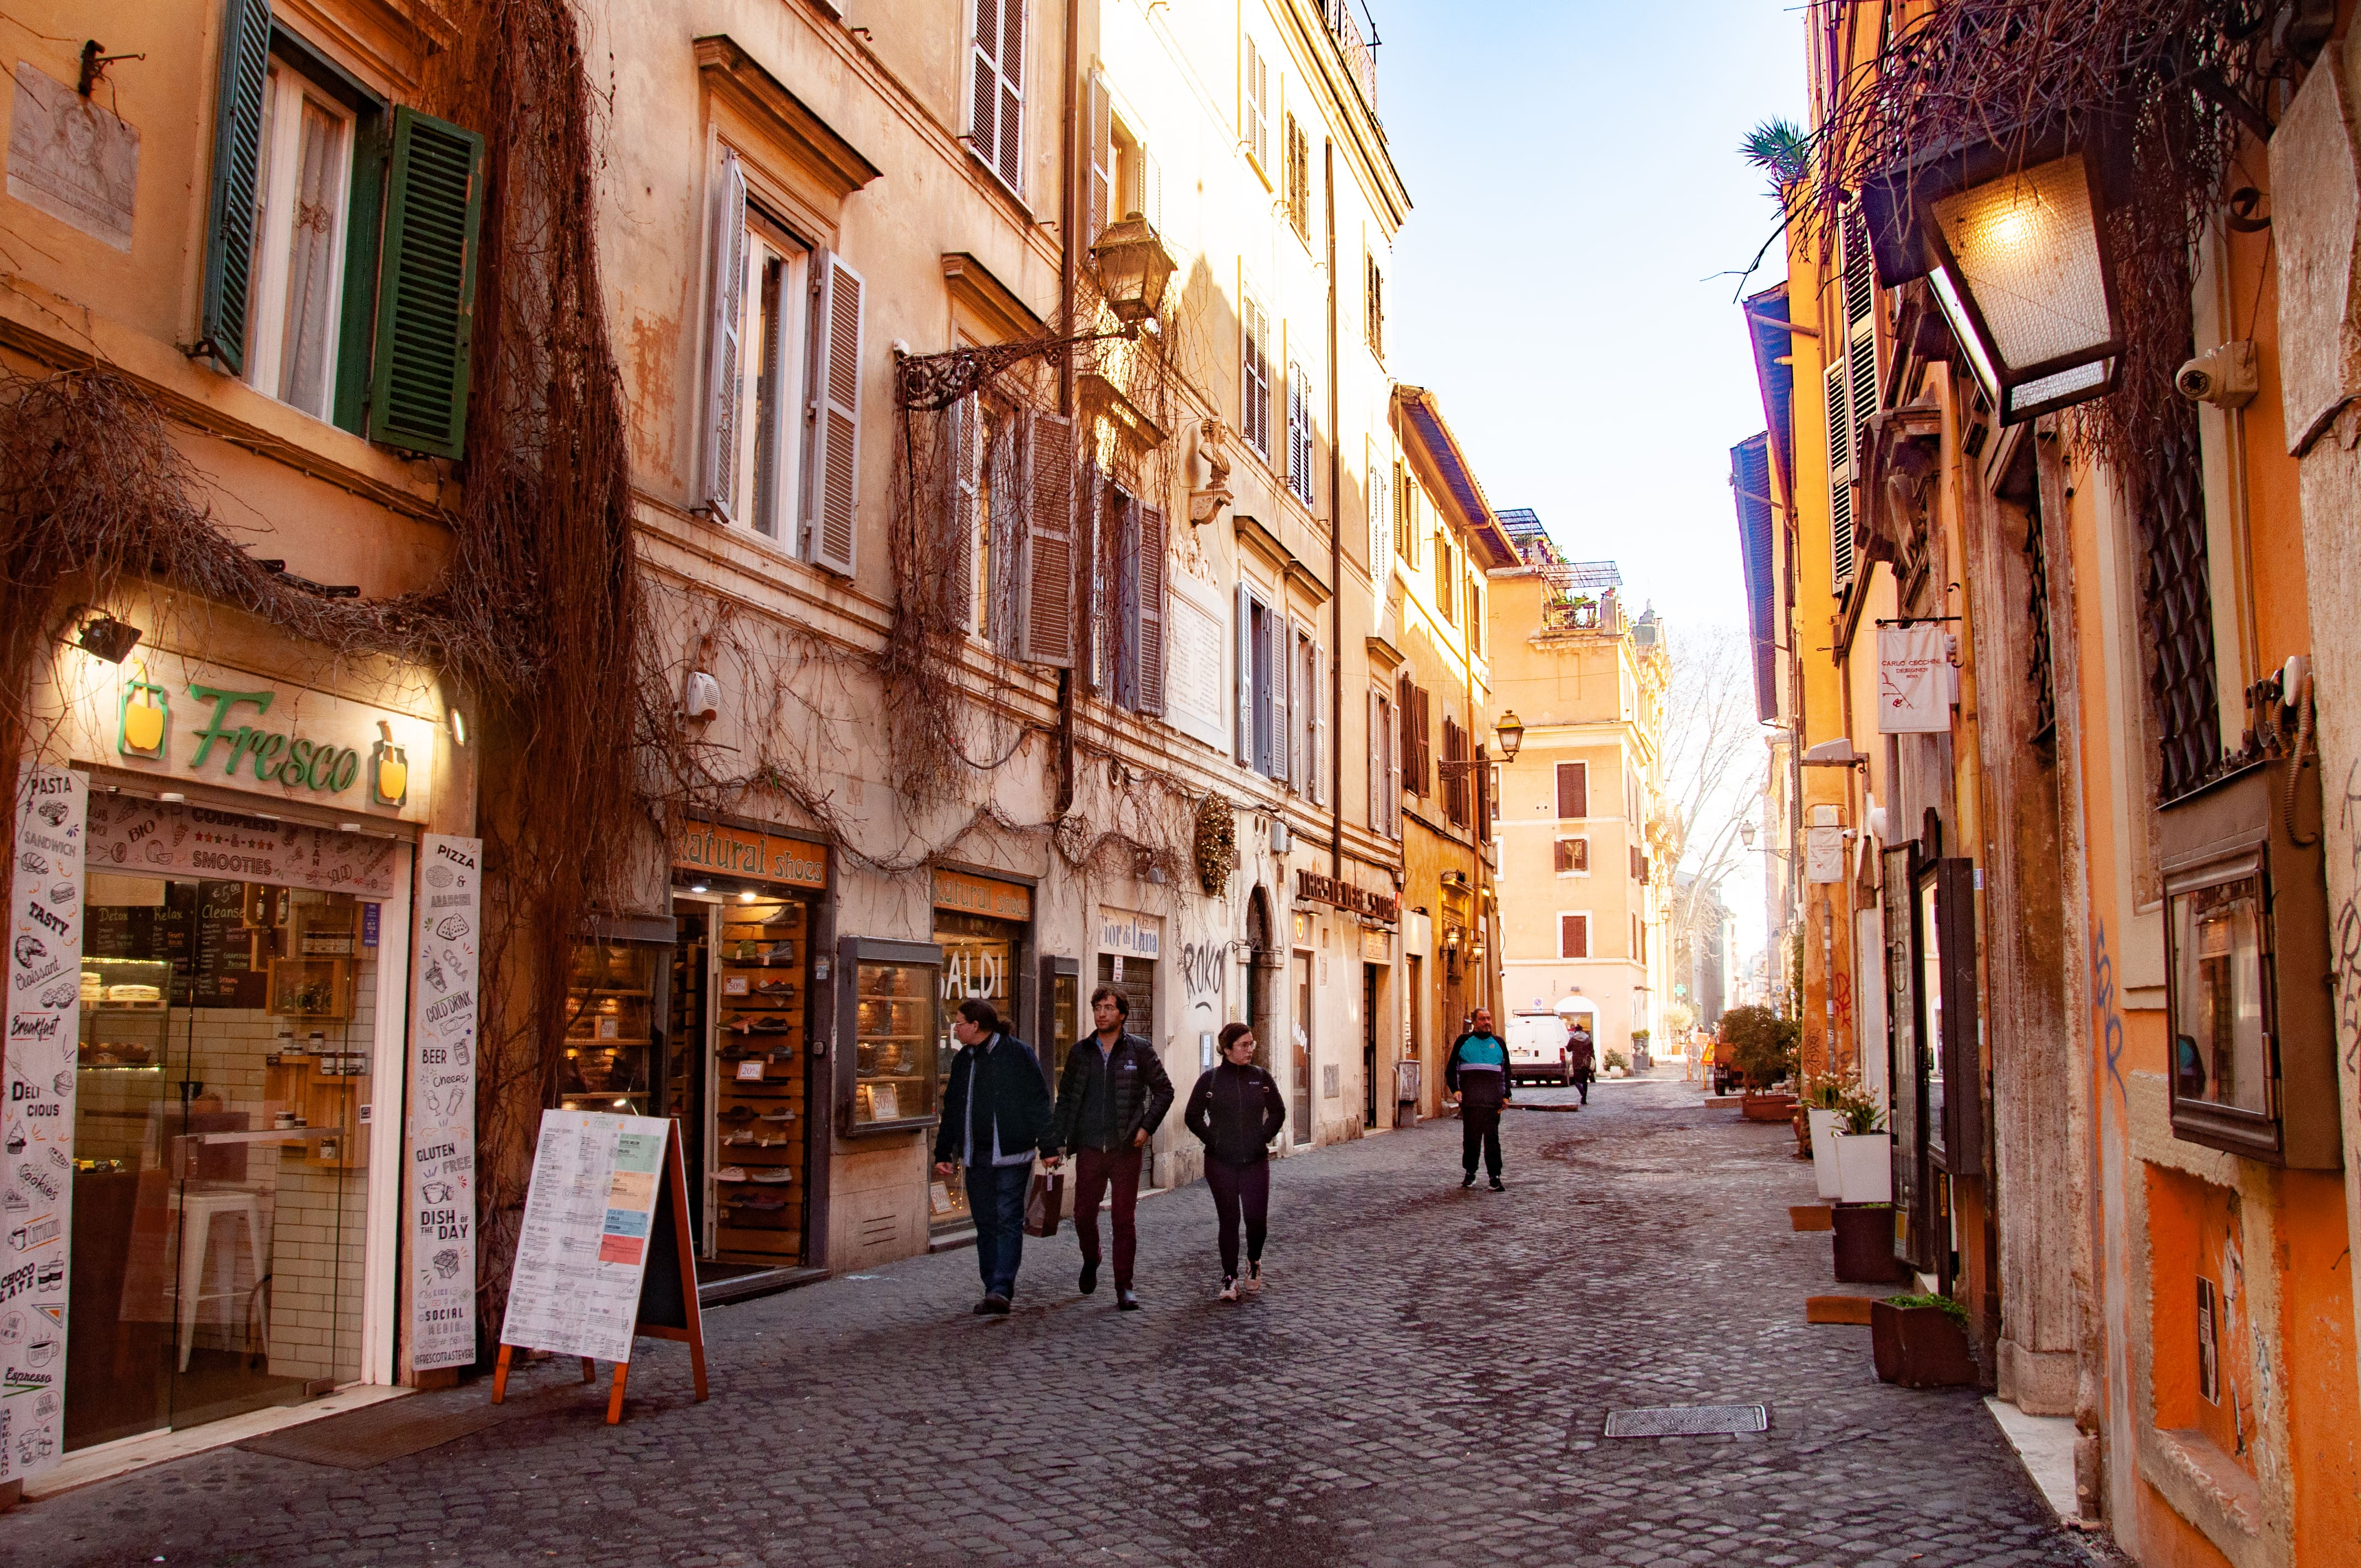 Exploring the Trastevere neighborhood in Rome is a hip thing to do in Italy